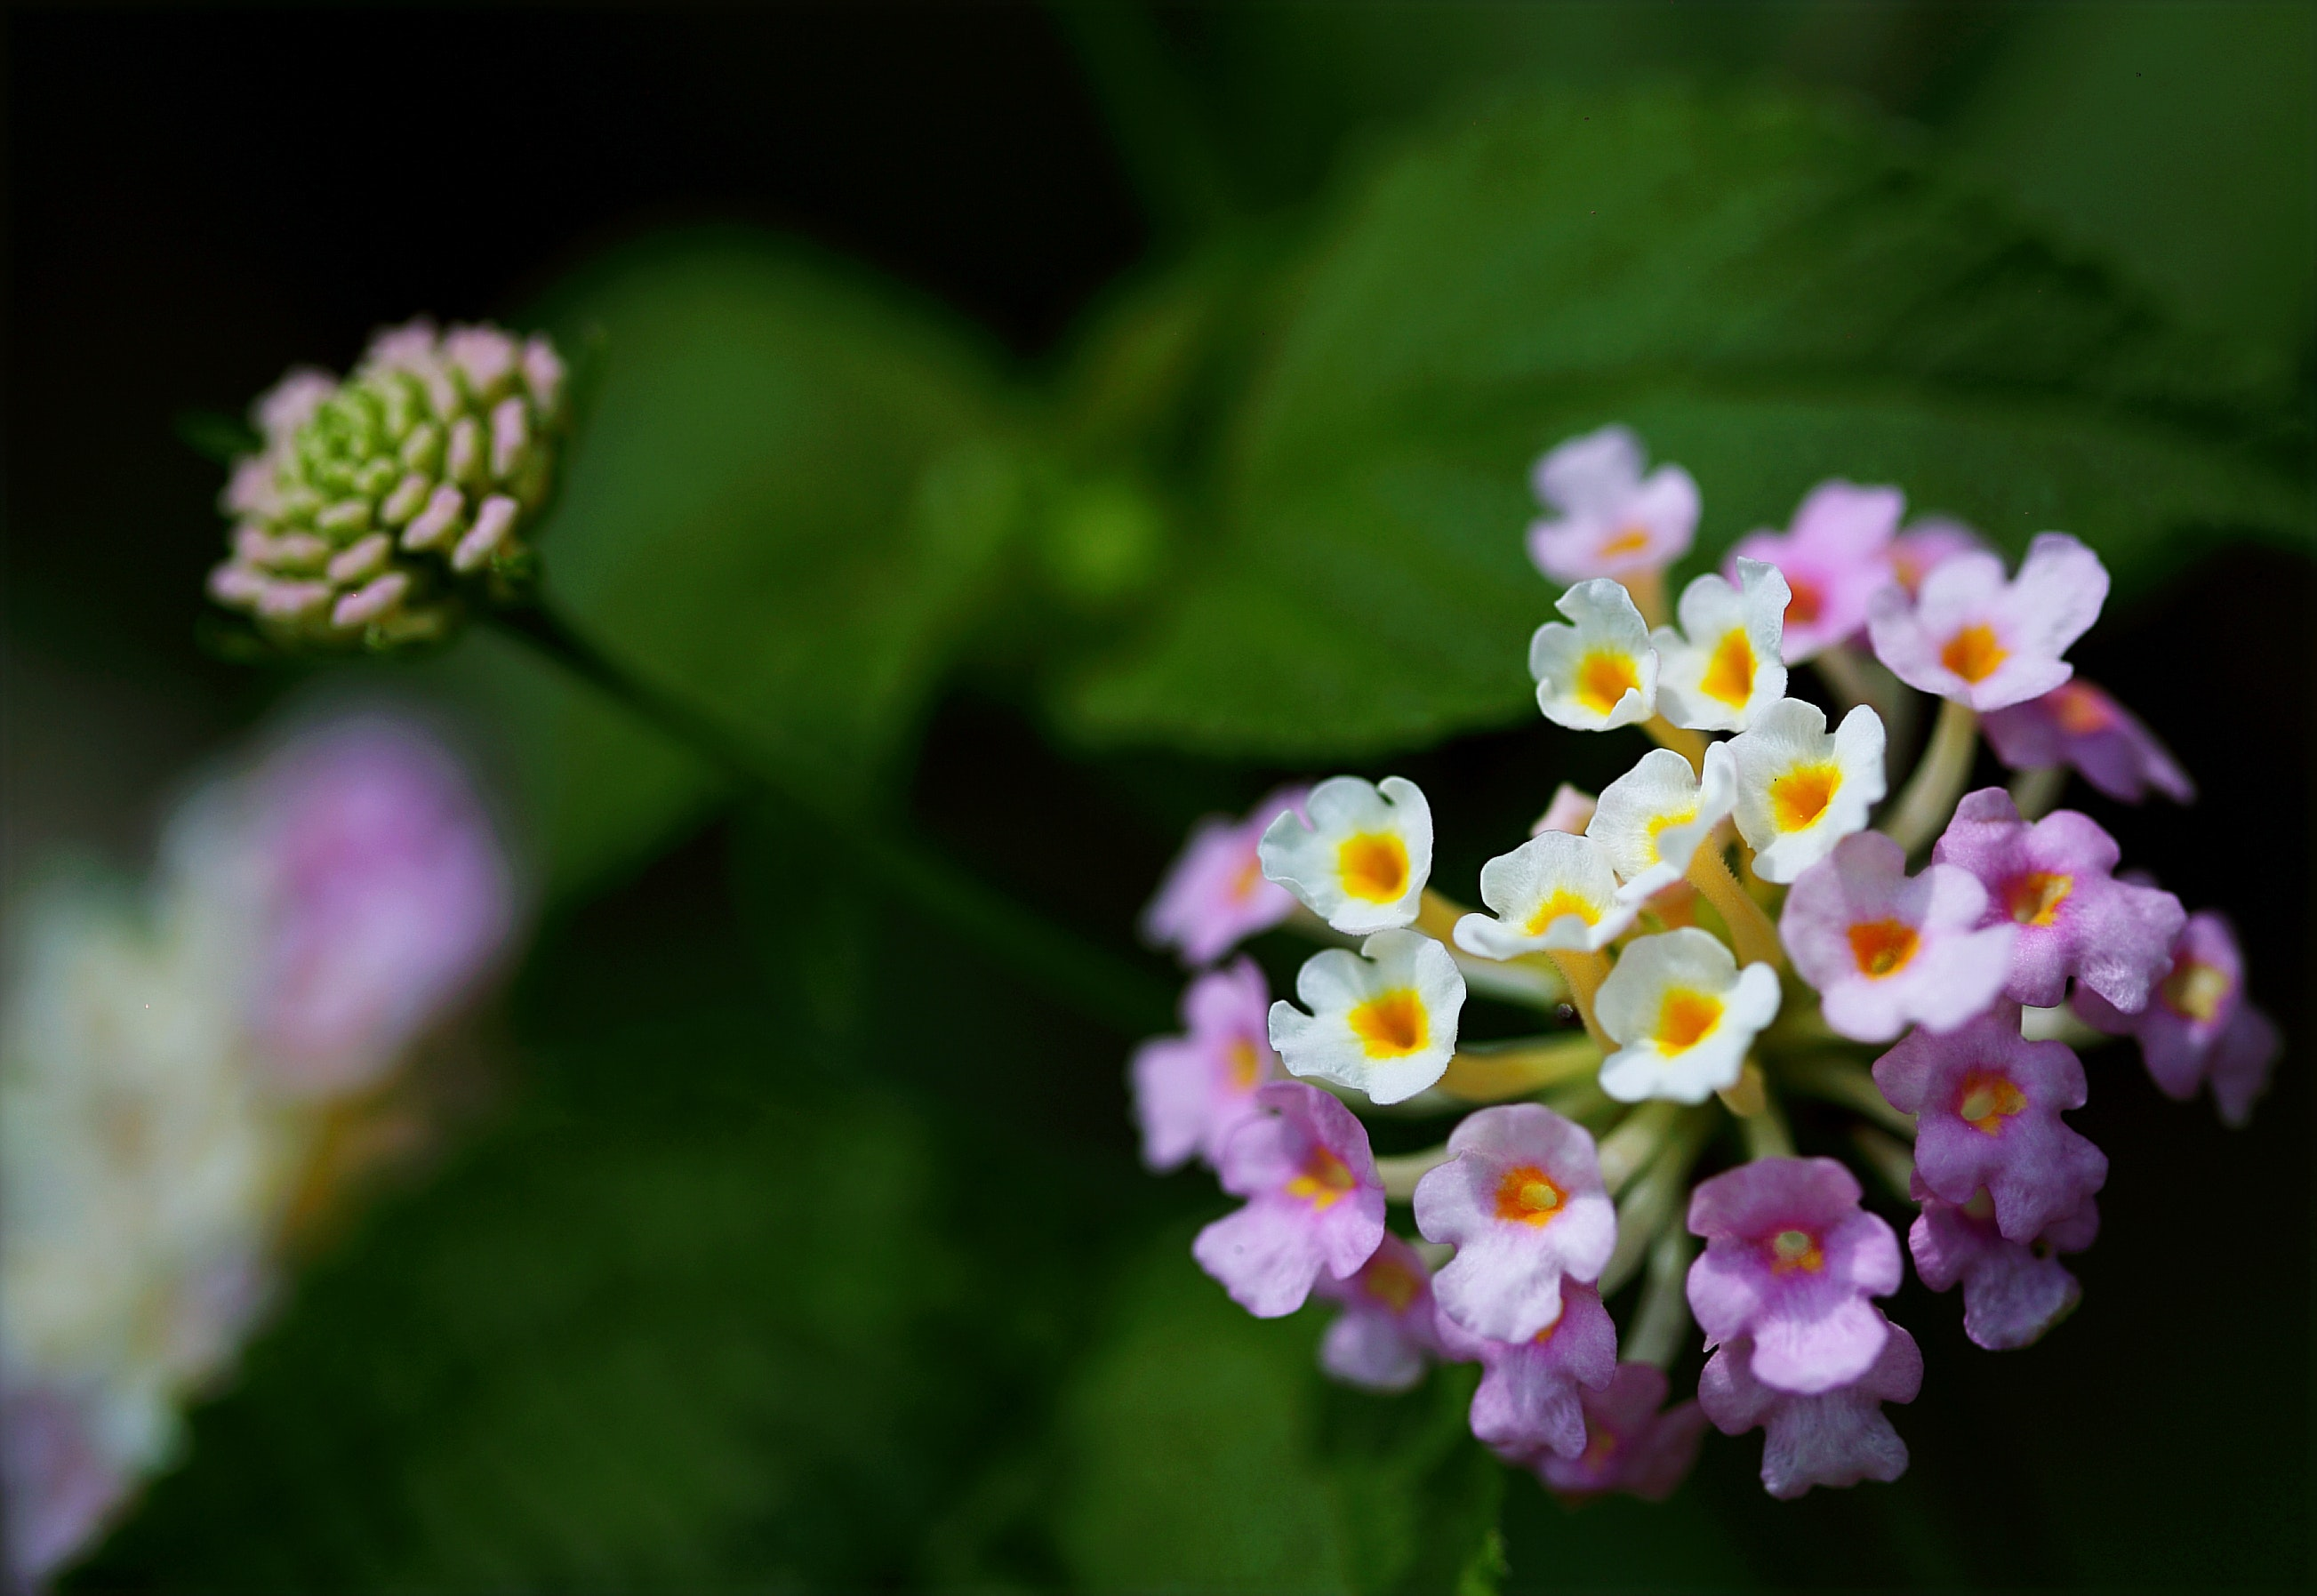 Free Photo Closeup Photography Of Purple And White Cluster Flowers